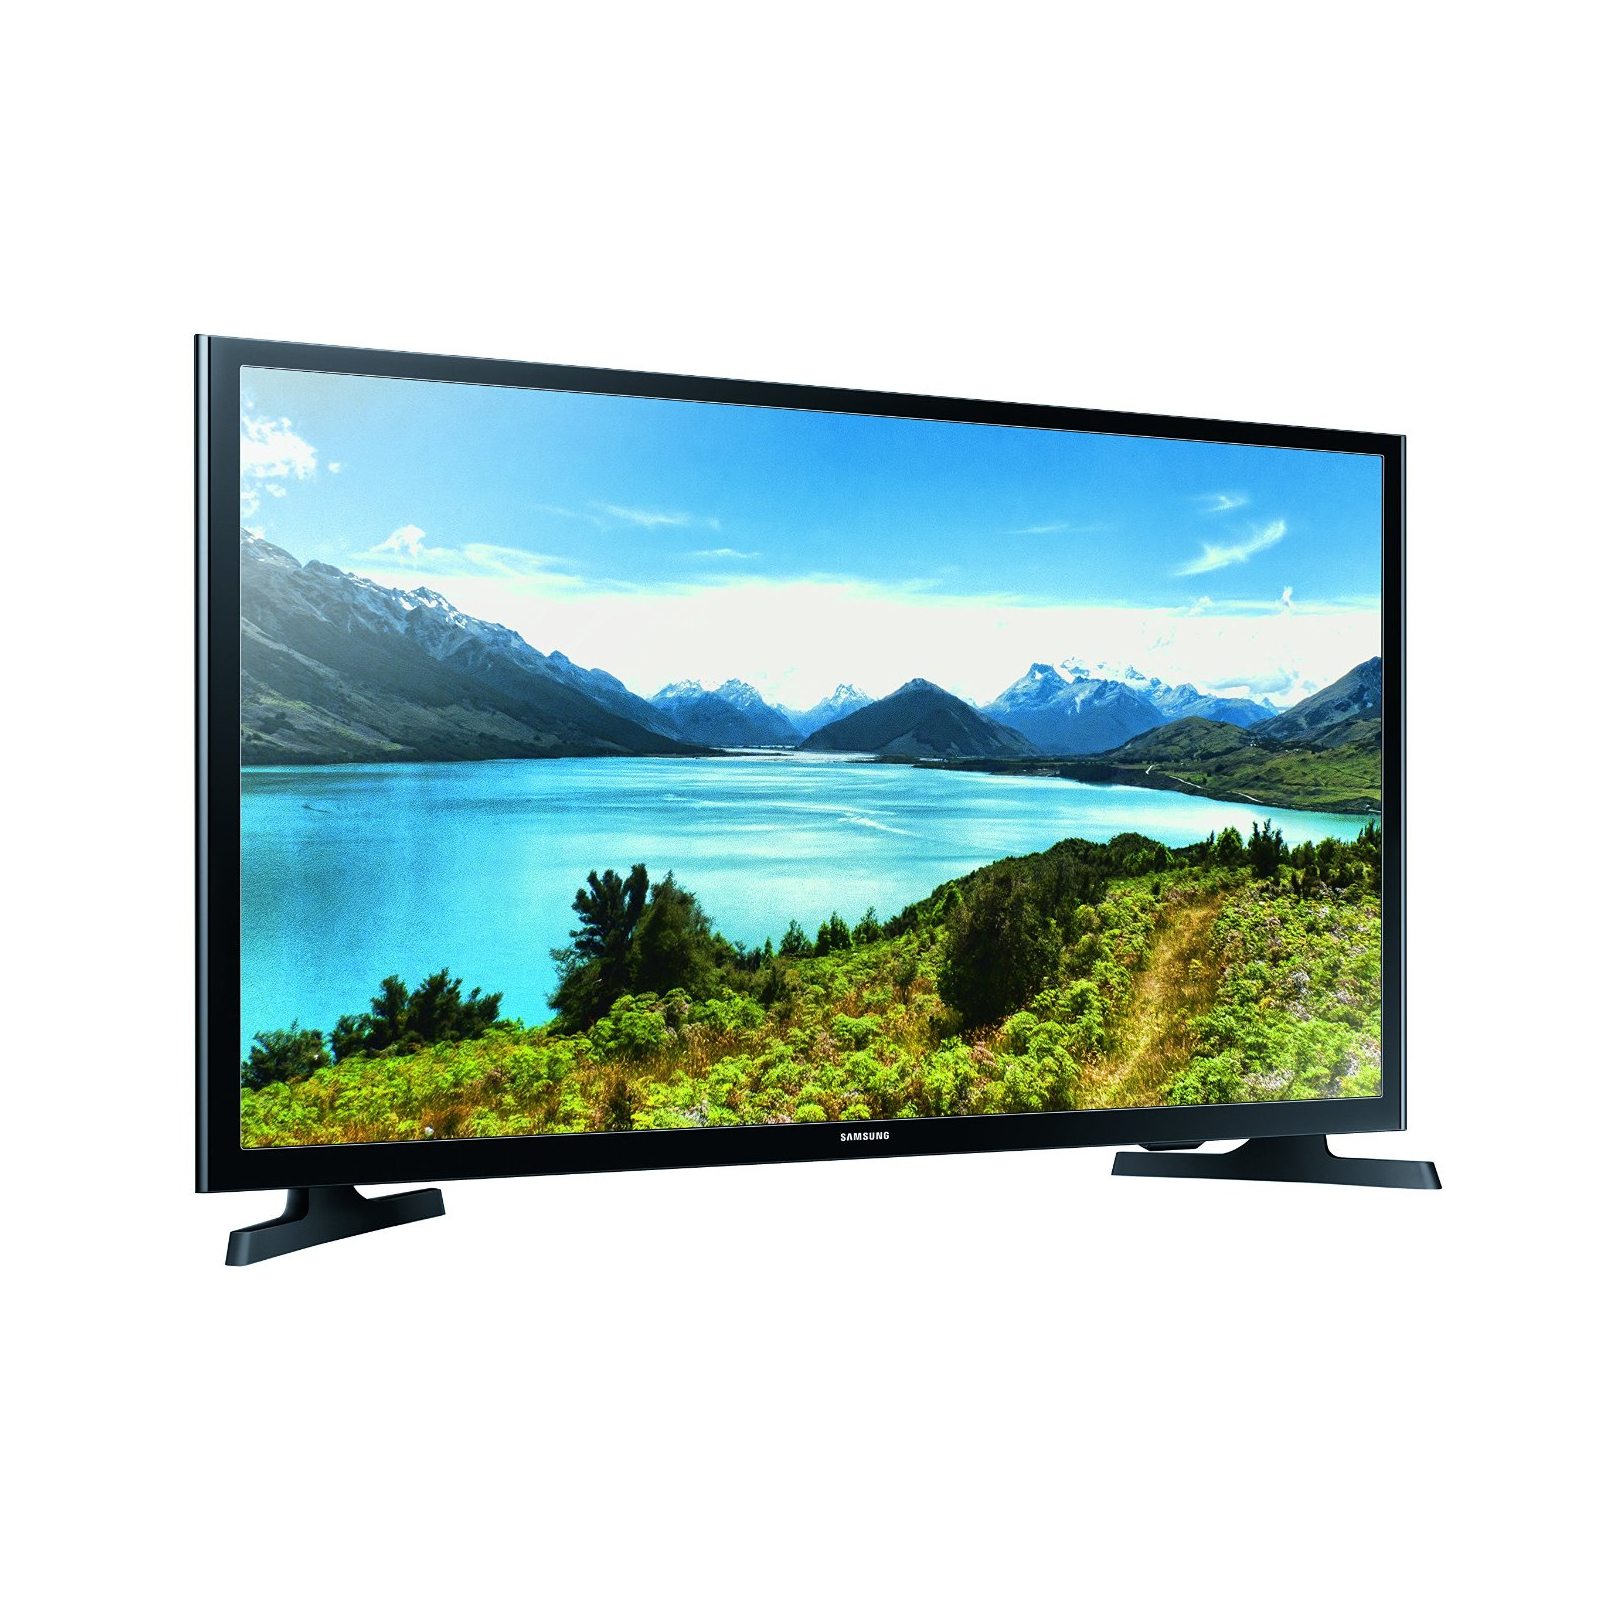 samsung hd led tv fernseher 80 cm 32 zoll bildschirm. Black Bedroom Furniture Sets. Home Design Ideas